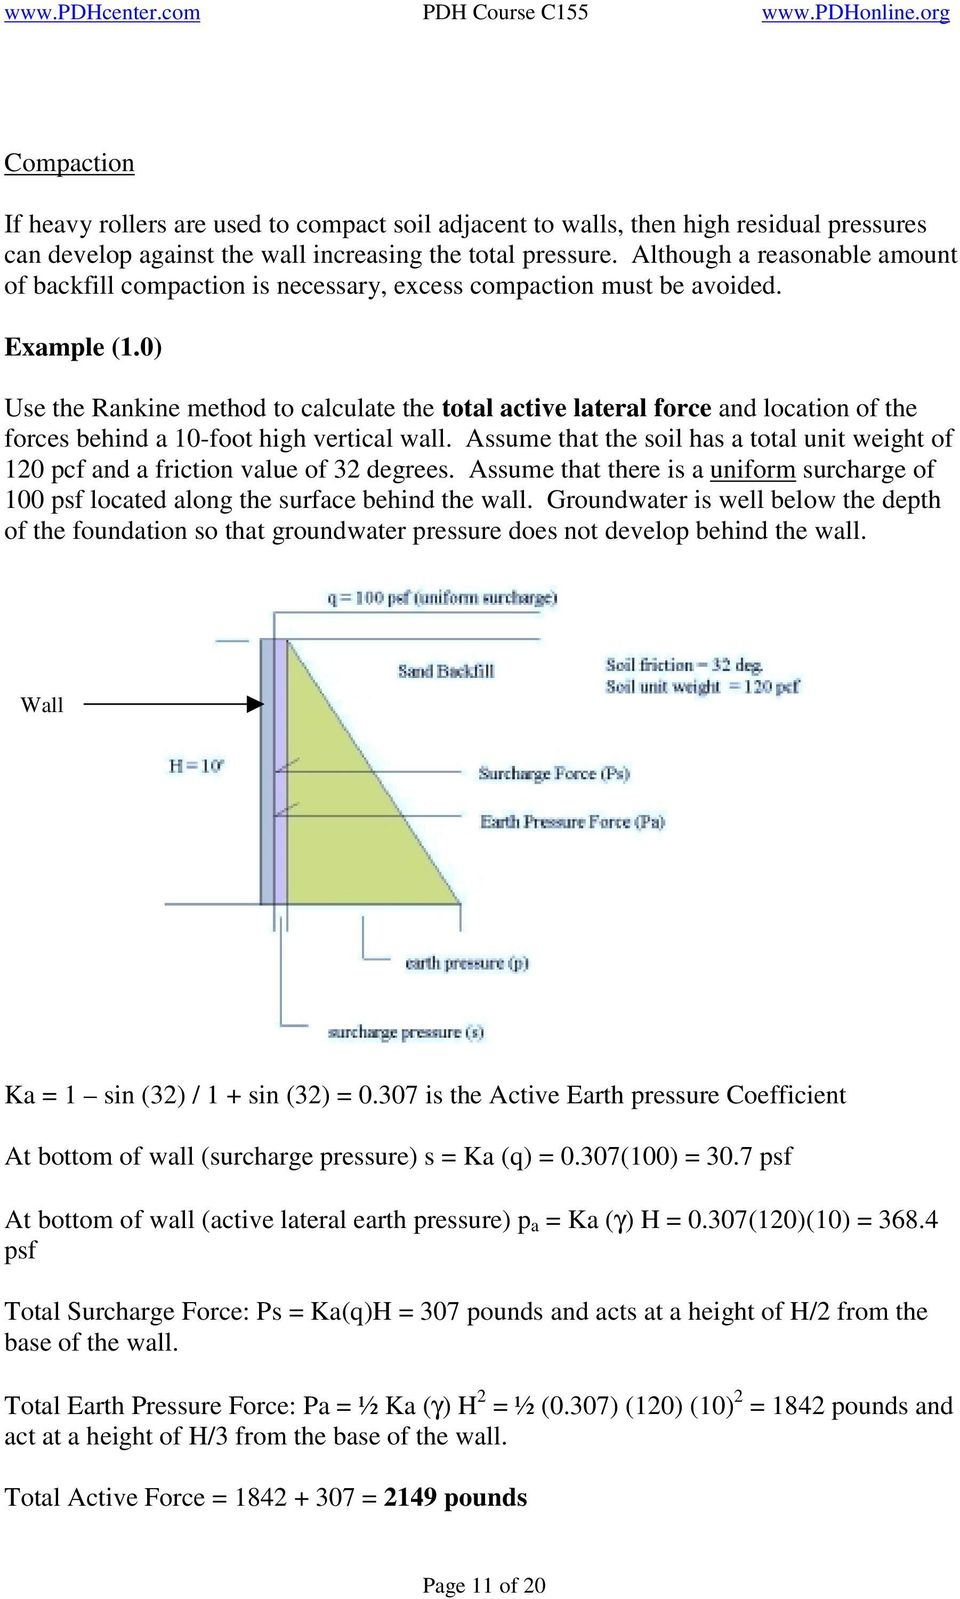 0) Use the Rankine method to calculate the total active lateral force and location of the forces behind a 10-foot high vertical wall.